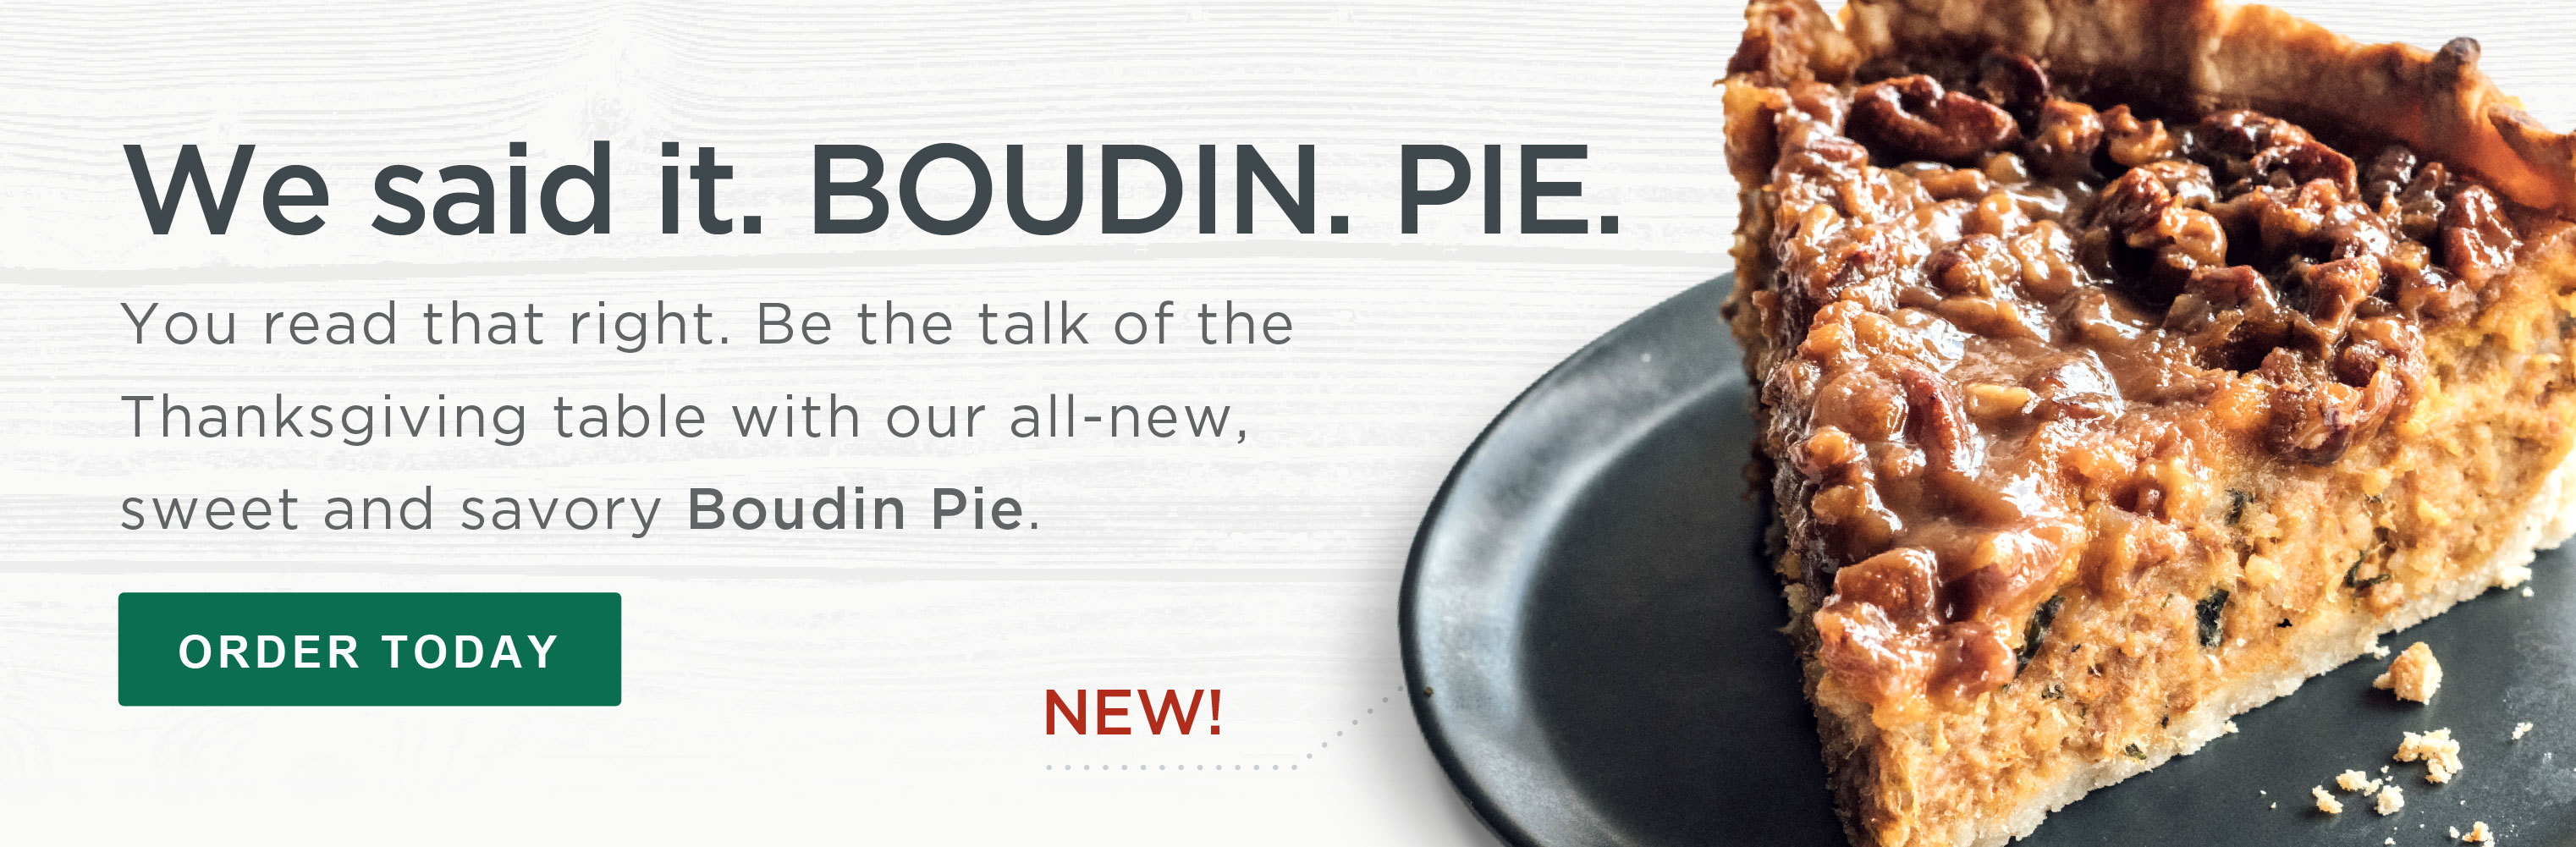 We said it. BOUDIN. PIE. You read that right. Be the talk of the Thanksgiving table with our all-new, sweet and savory Boudin Pie. ORDER TODAY »